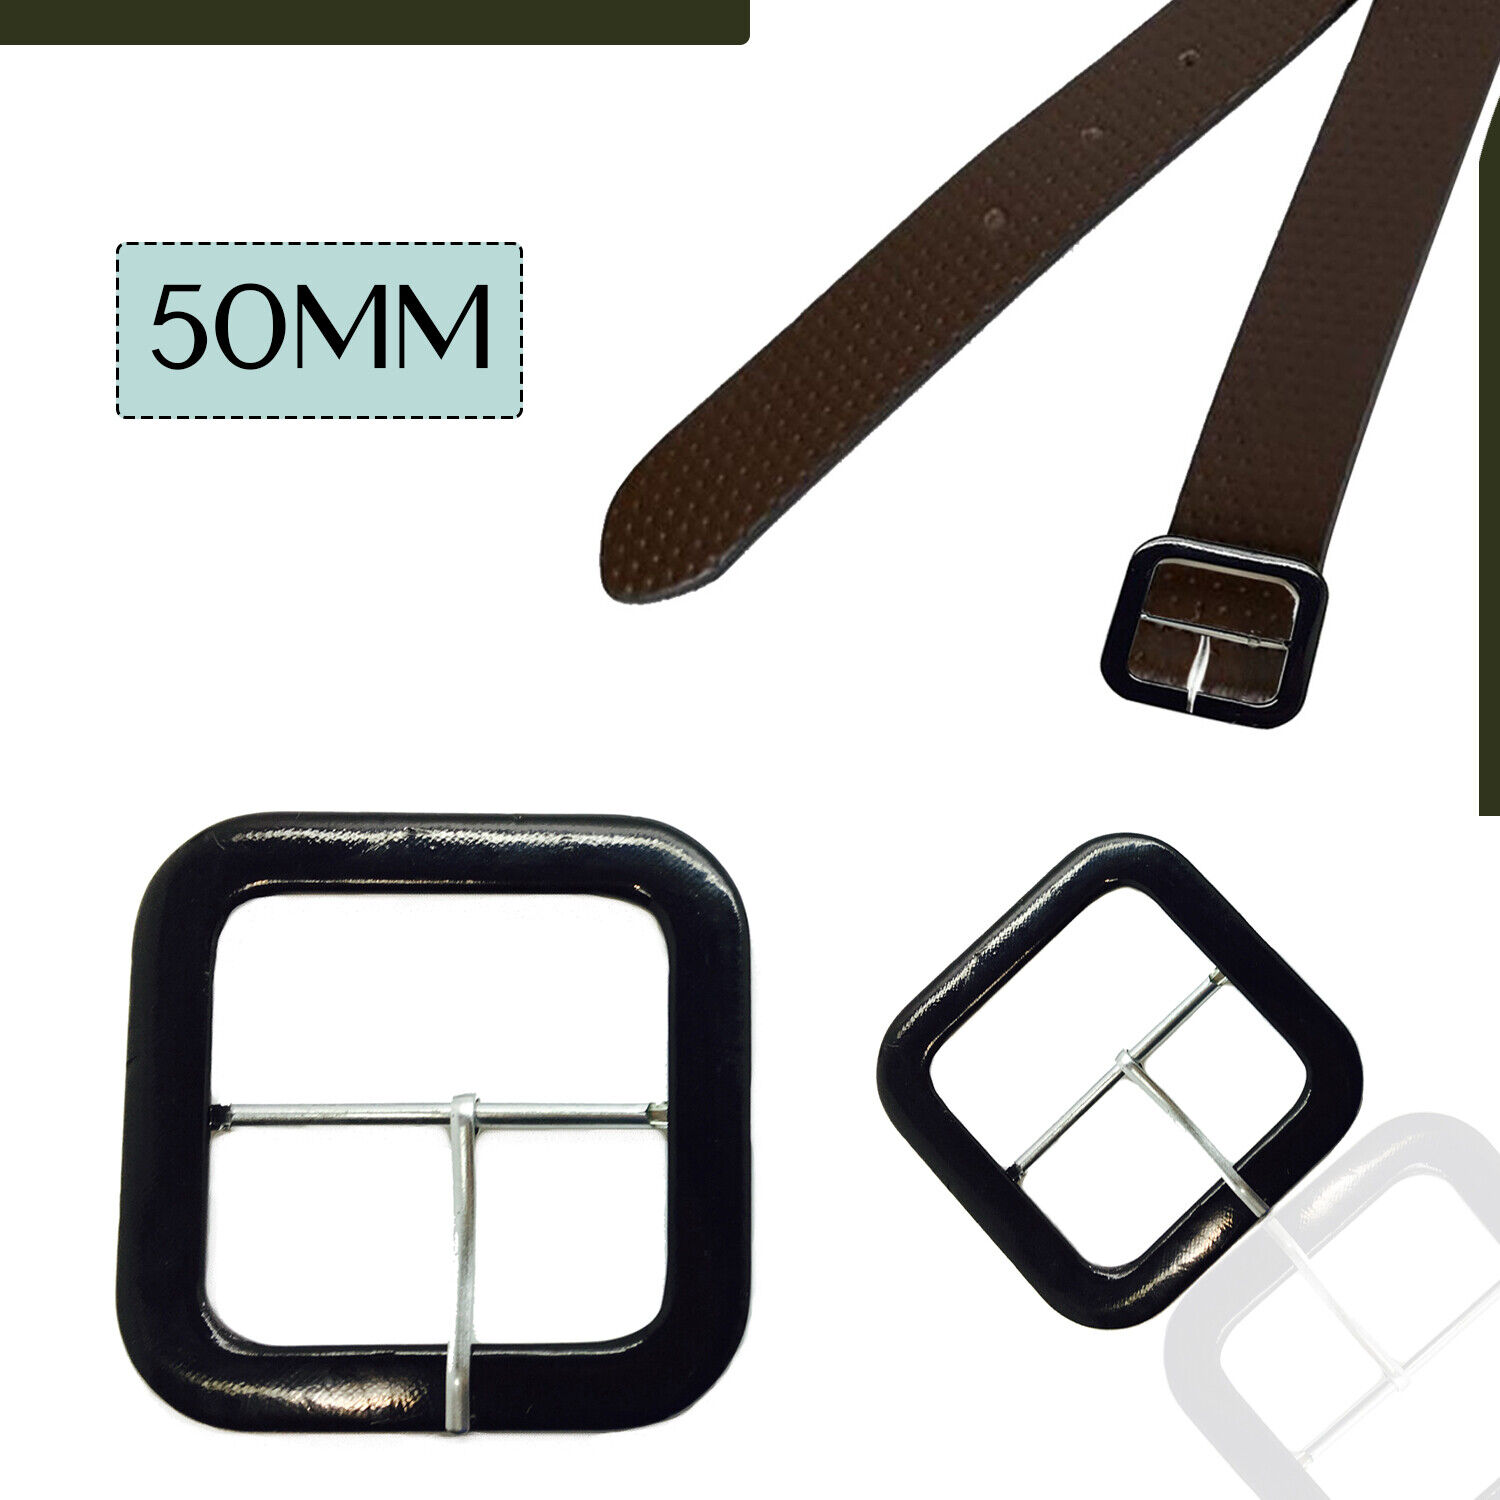 2-5-10pcs Stylish Belt Covered Square Buckles for Sewing Coats Belts Arts Crafts